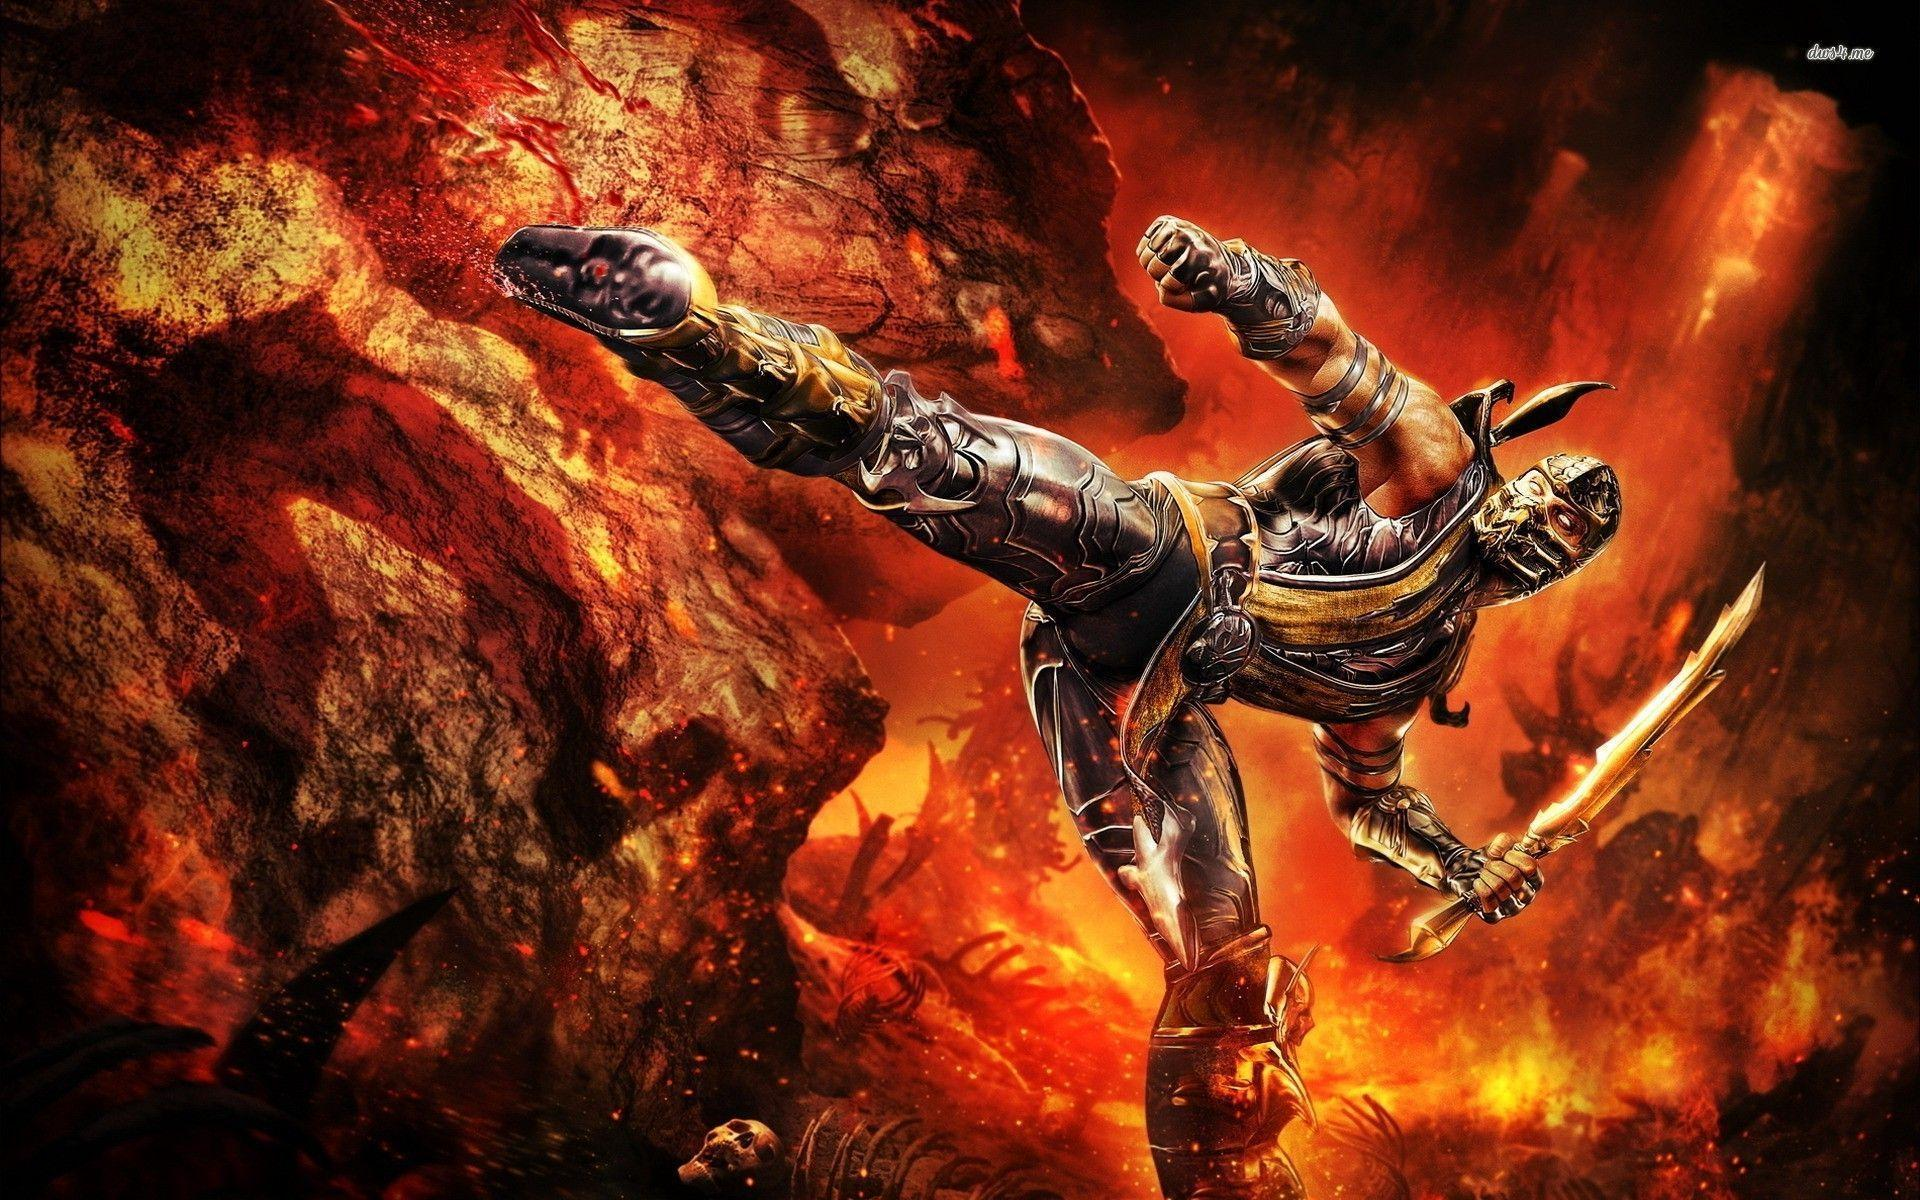 mortal kombat 9 scorpion wallpapers - wallpaper cave